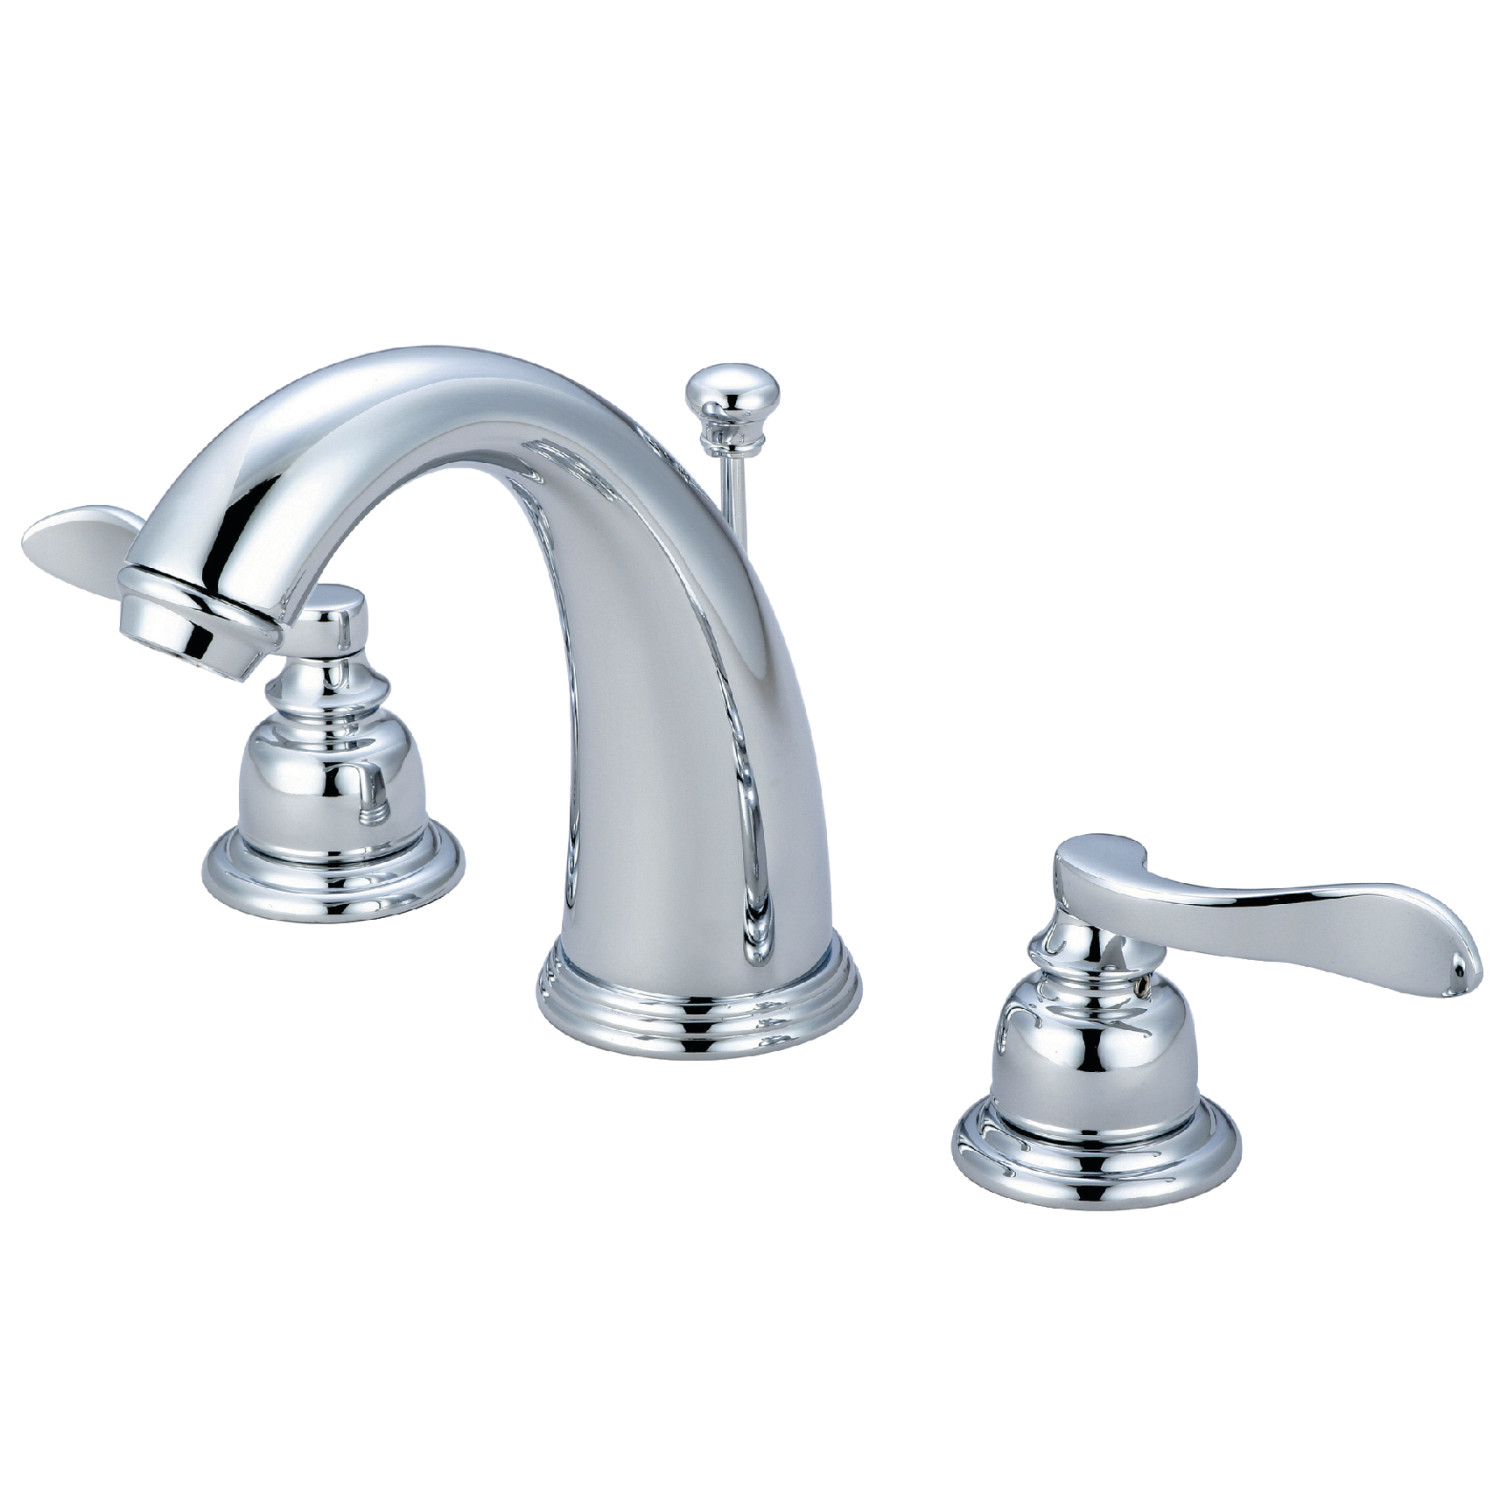 Modern Dual Lever Two-Handle 3-Hole Deck Mounted Widespread Bathroom Faucet with Plastic Pop-Up in Polished Chrome